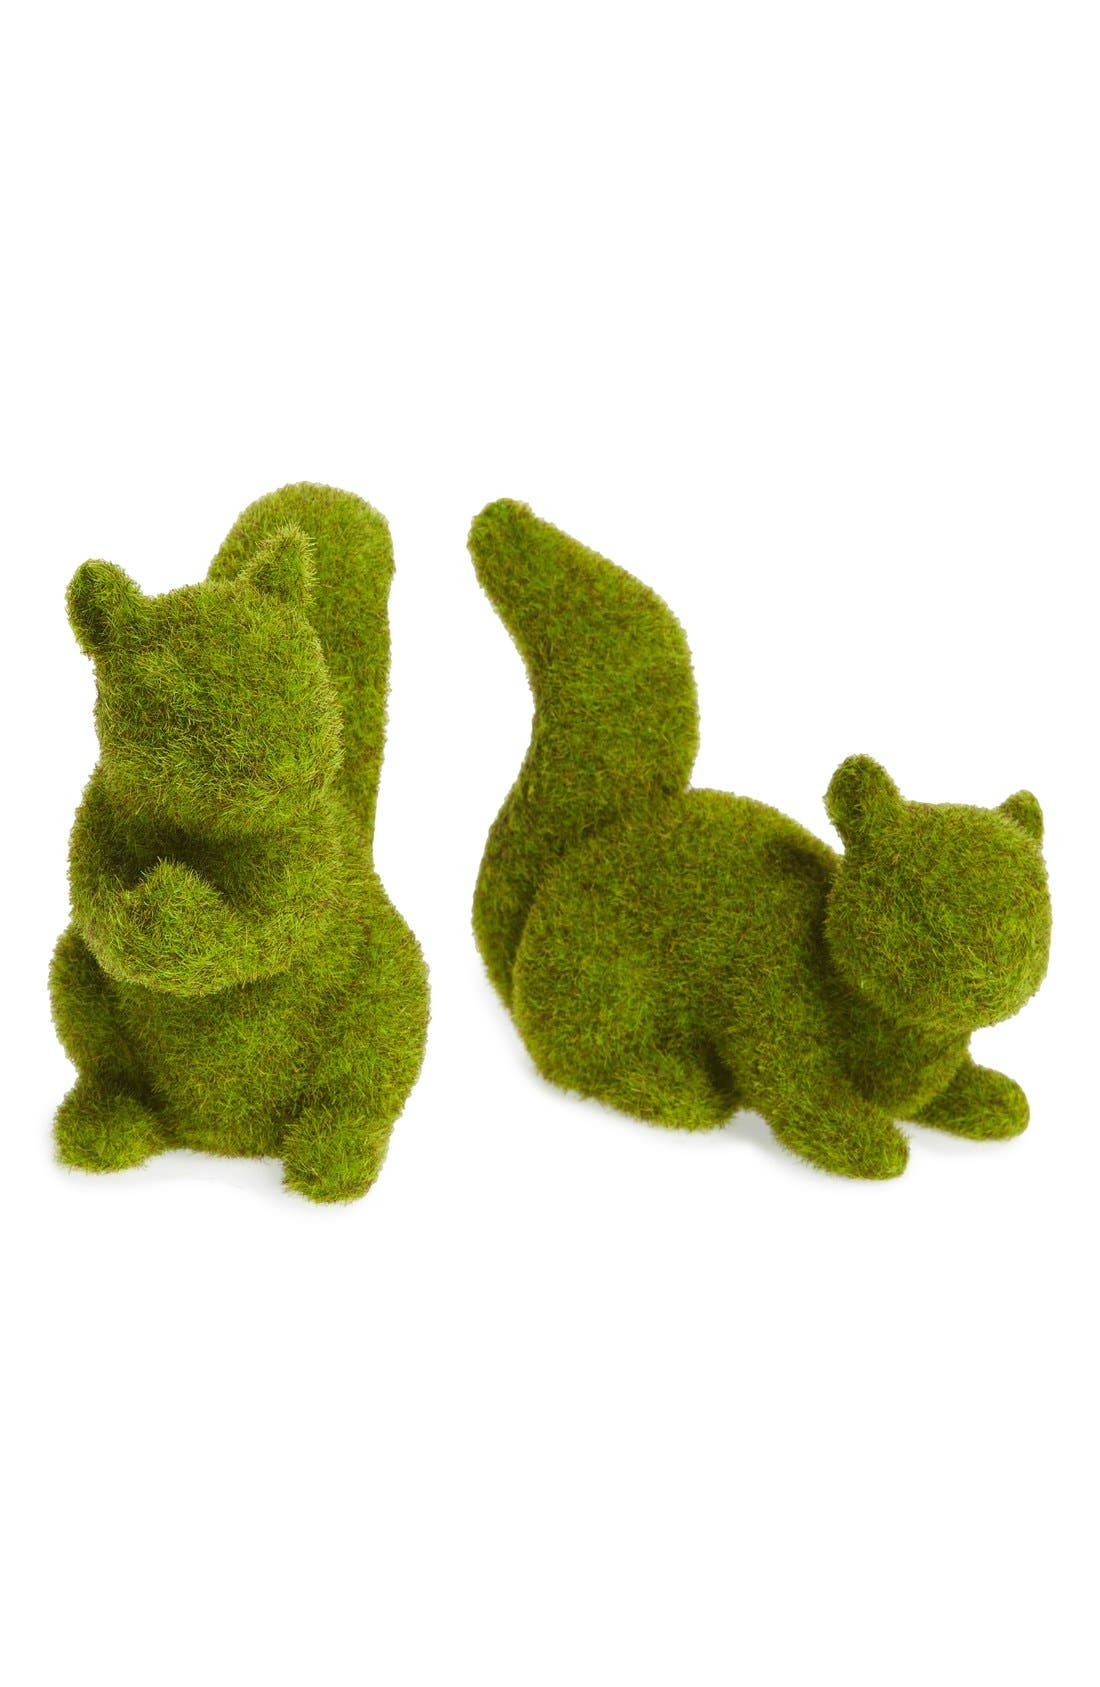 Alternate Image 1 Selected - ALLSTATE 'Moss Squirrel' Figurines (Set of 2)